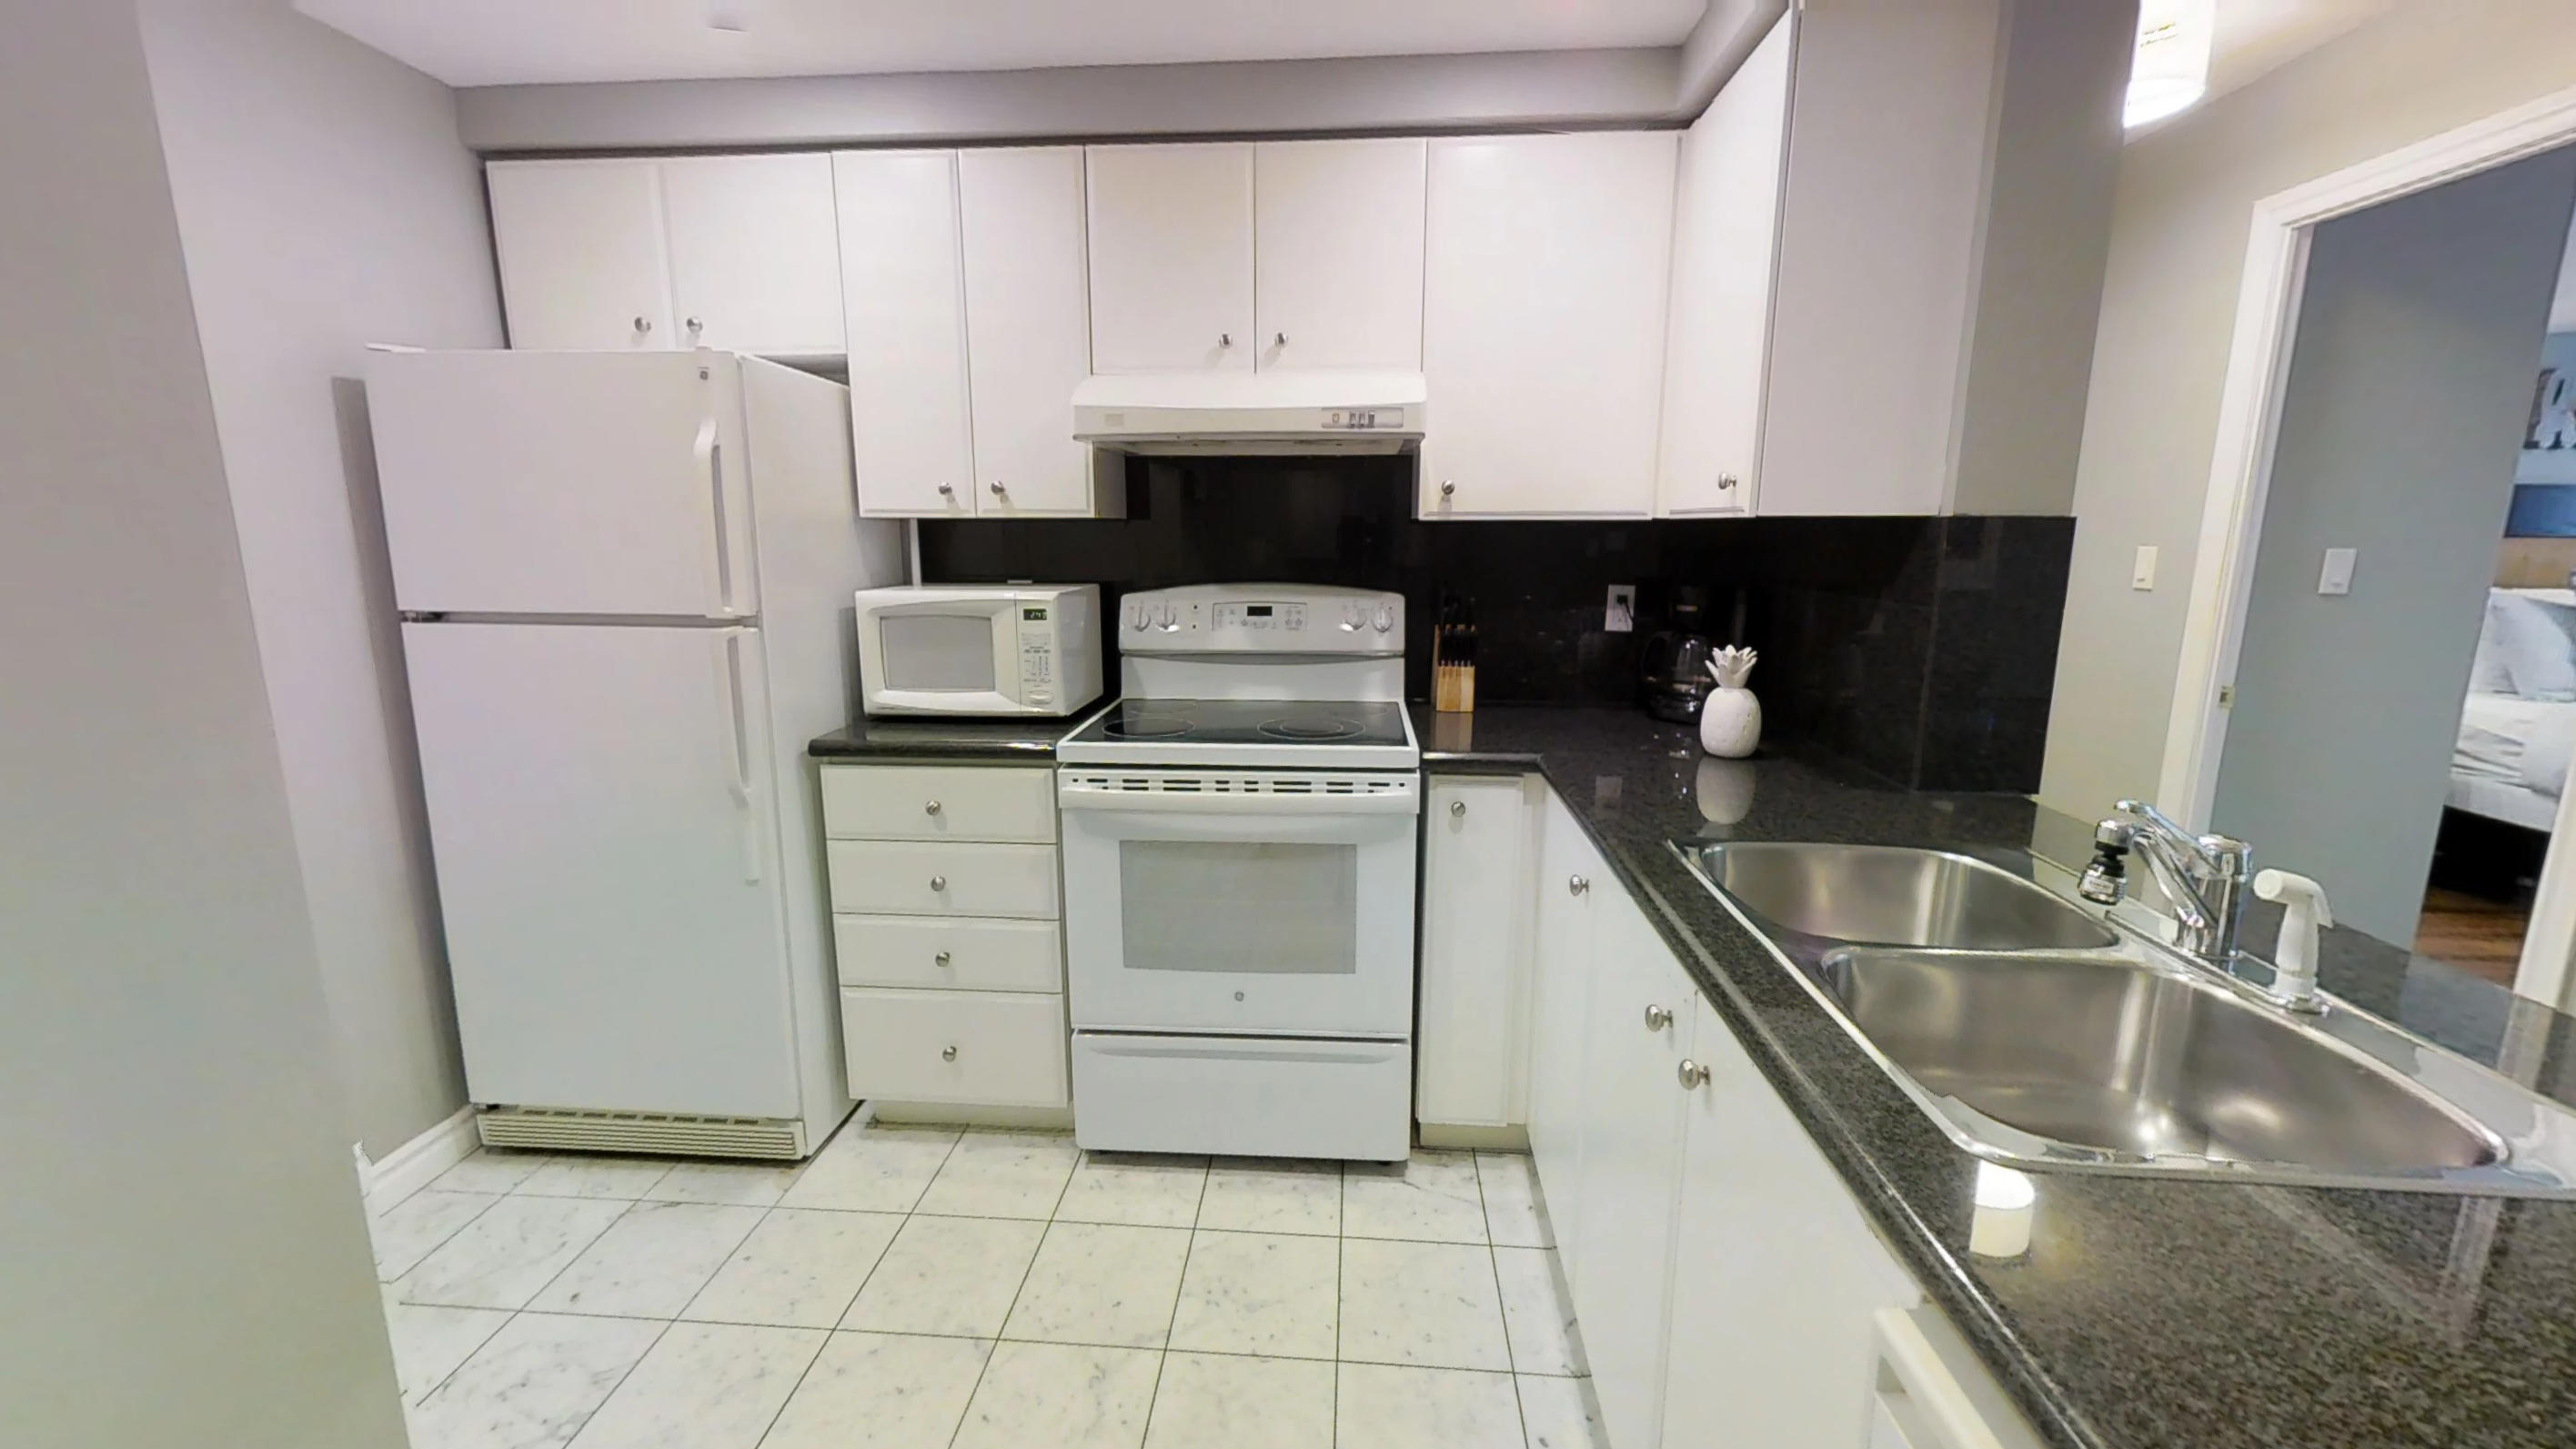 The fully furnished kitchen in a Qwest condominium, furnished by Sky View Suites in downtown Toronto.